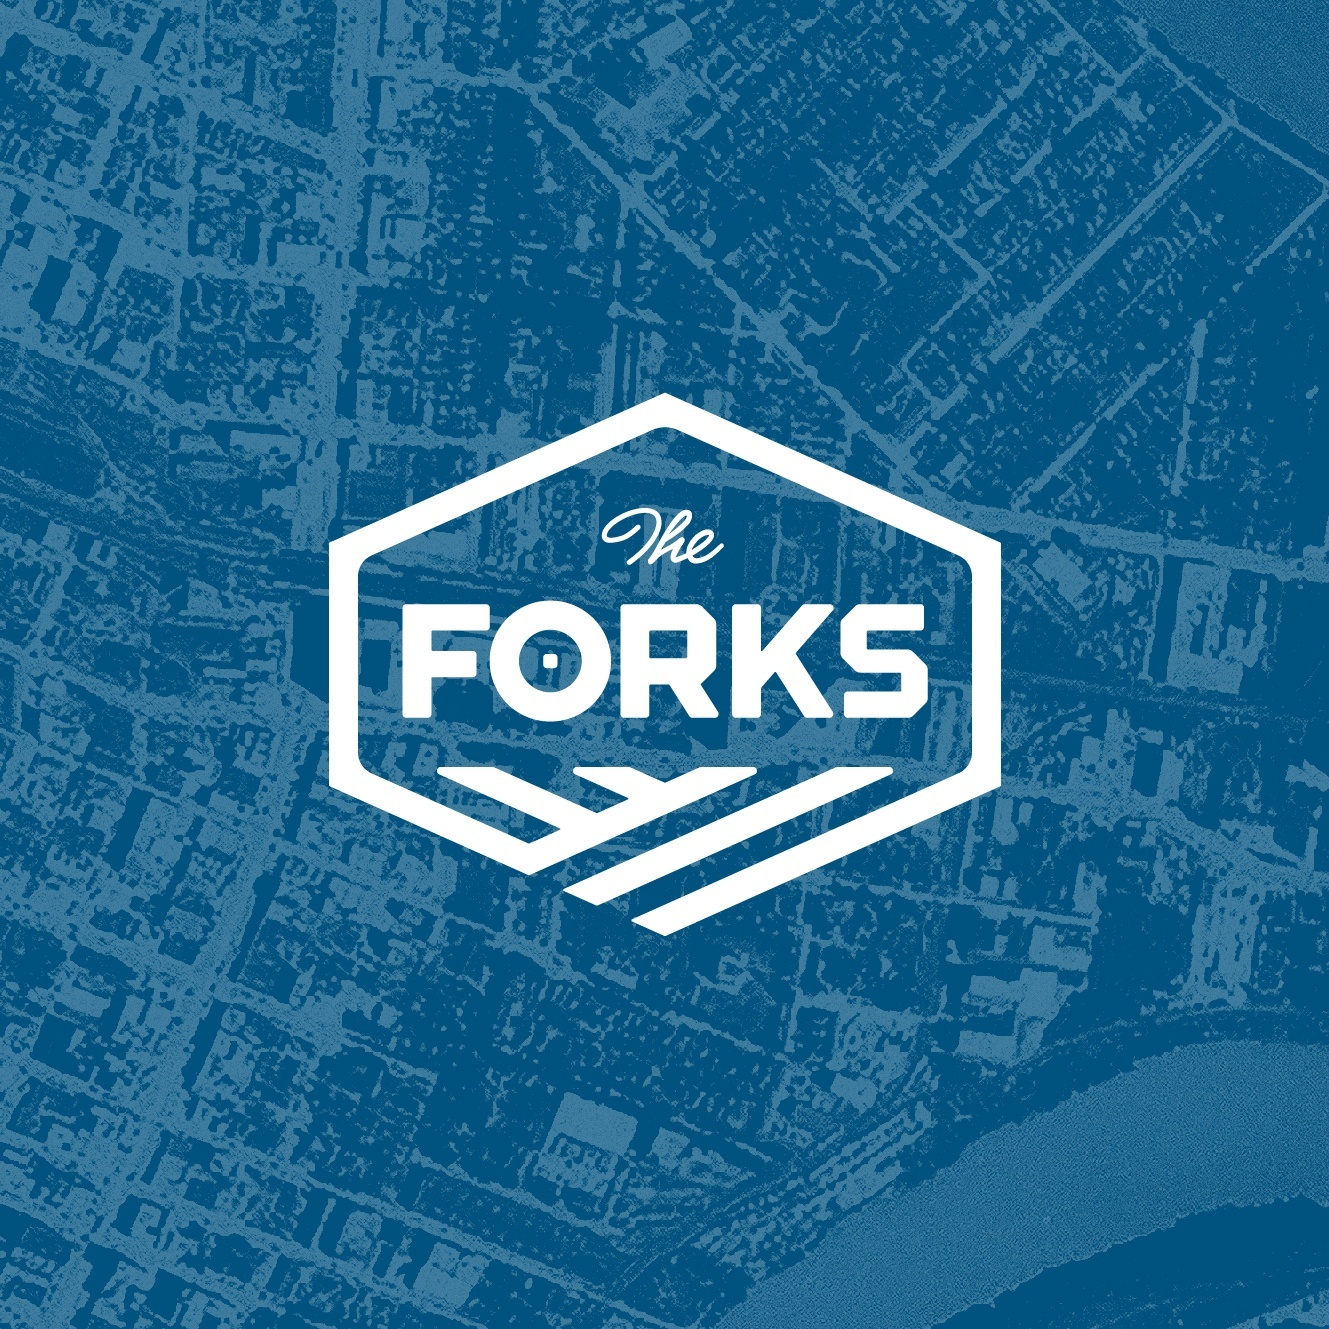 The Forks brand